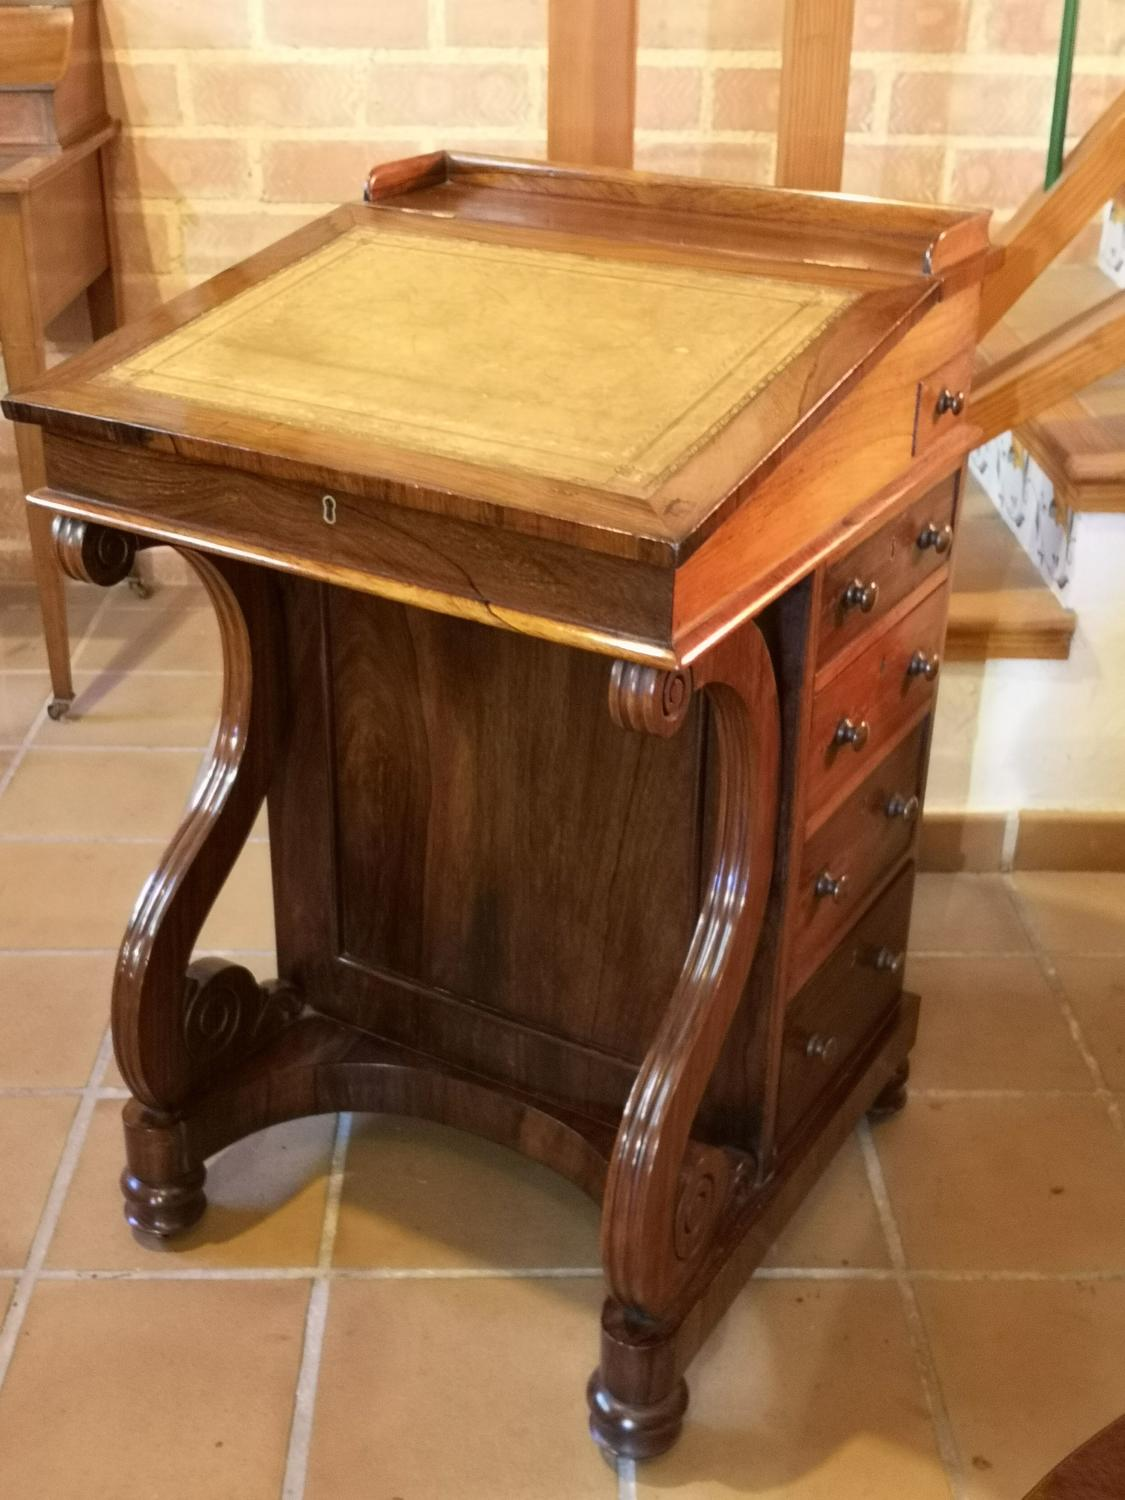 19th century Rosewood Davenport writing desk